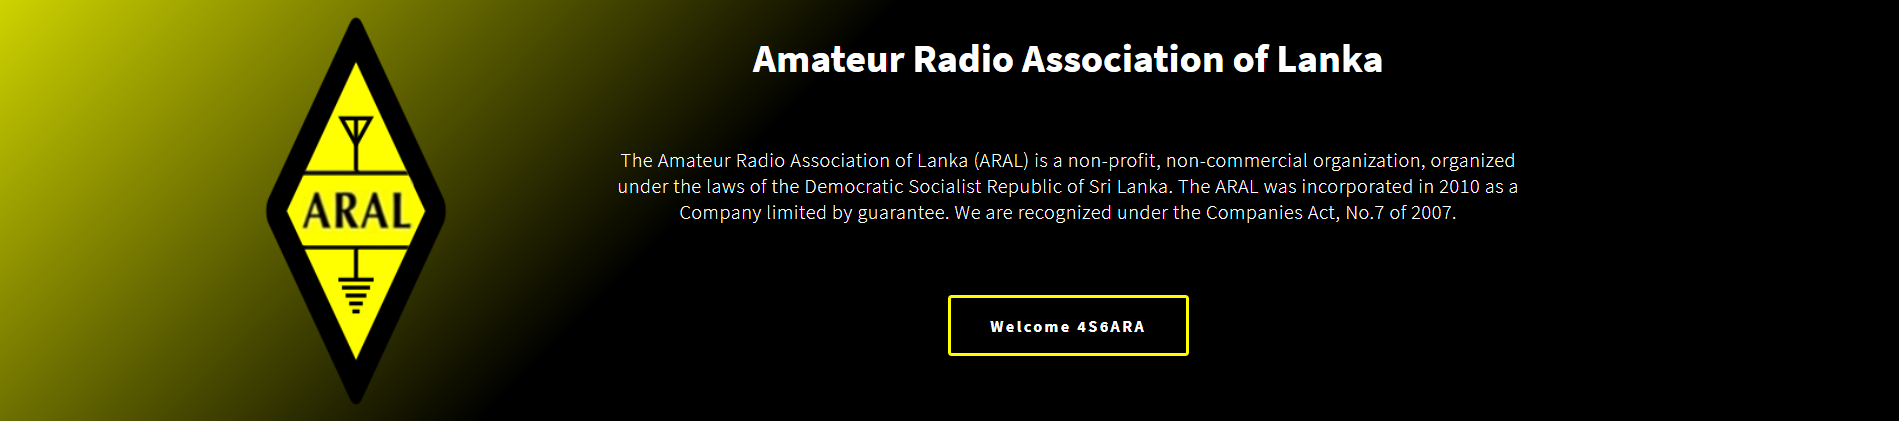 Amateur Radio Association of Lanka